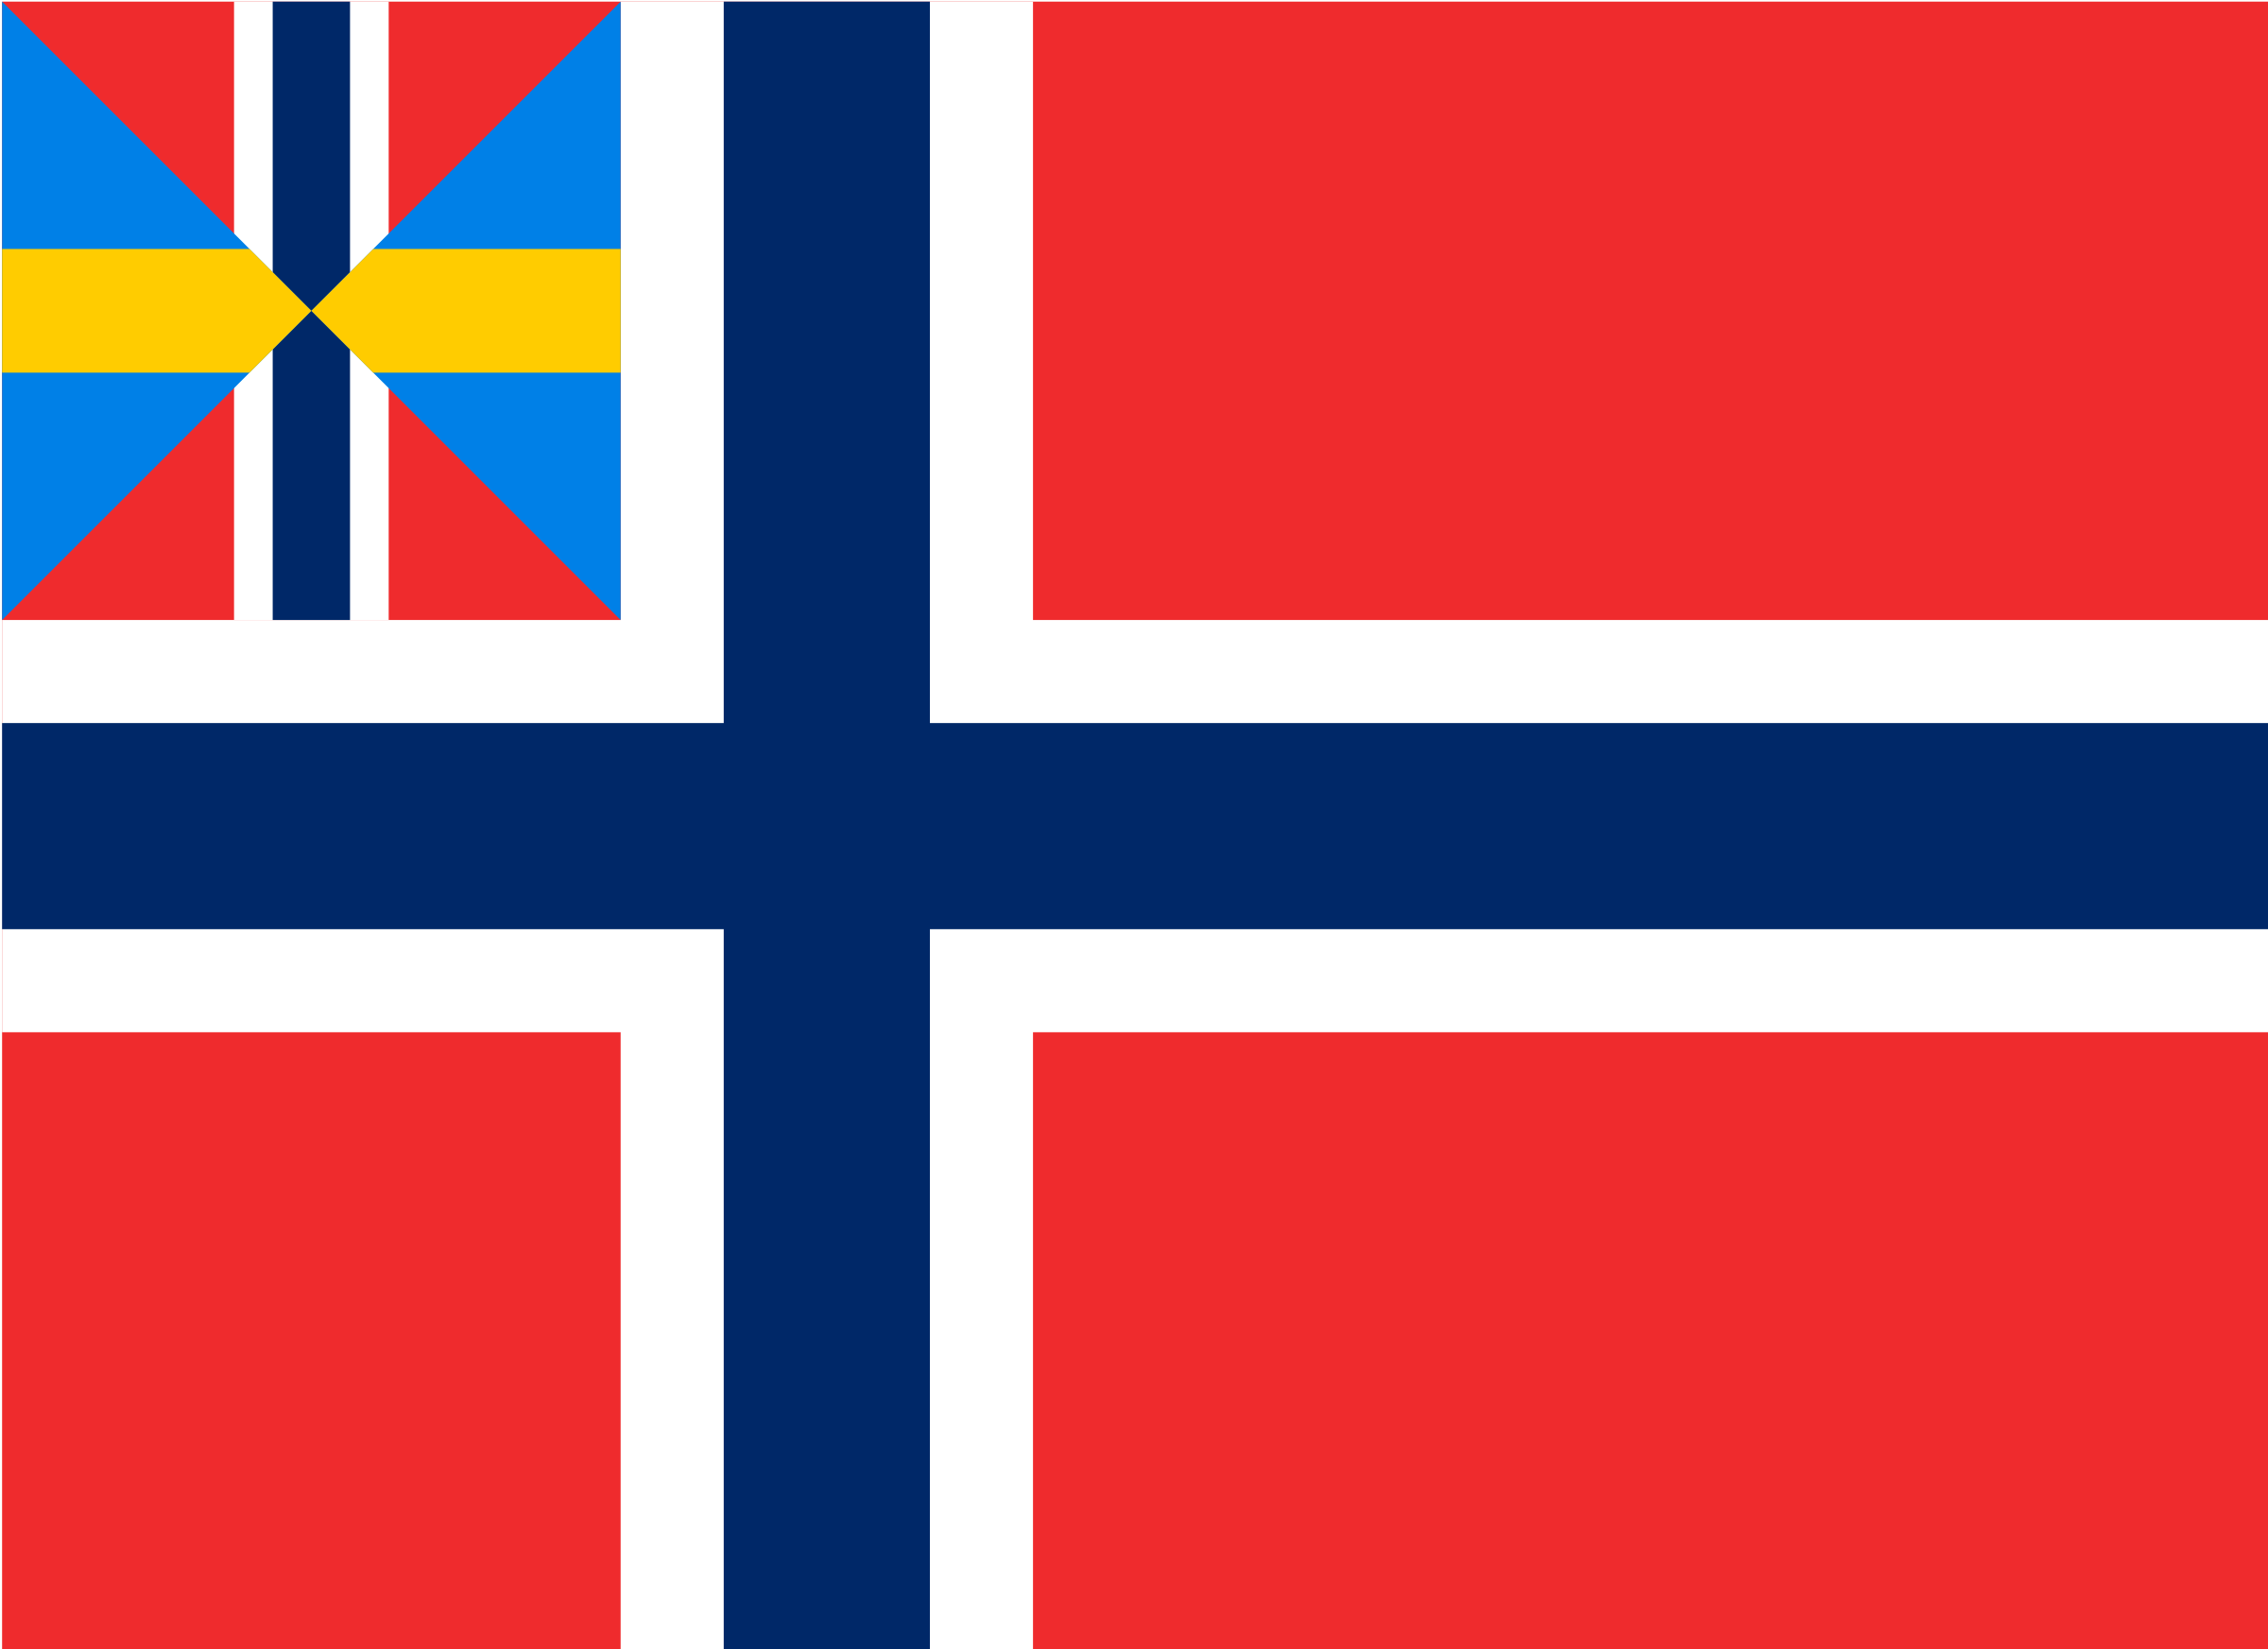 Norwegian Union flag by Anonymous